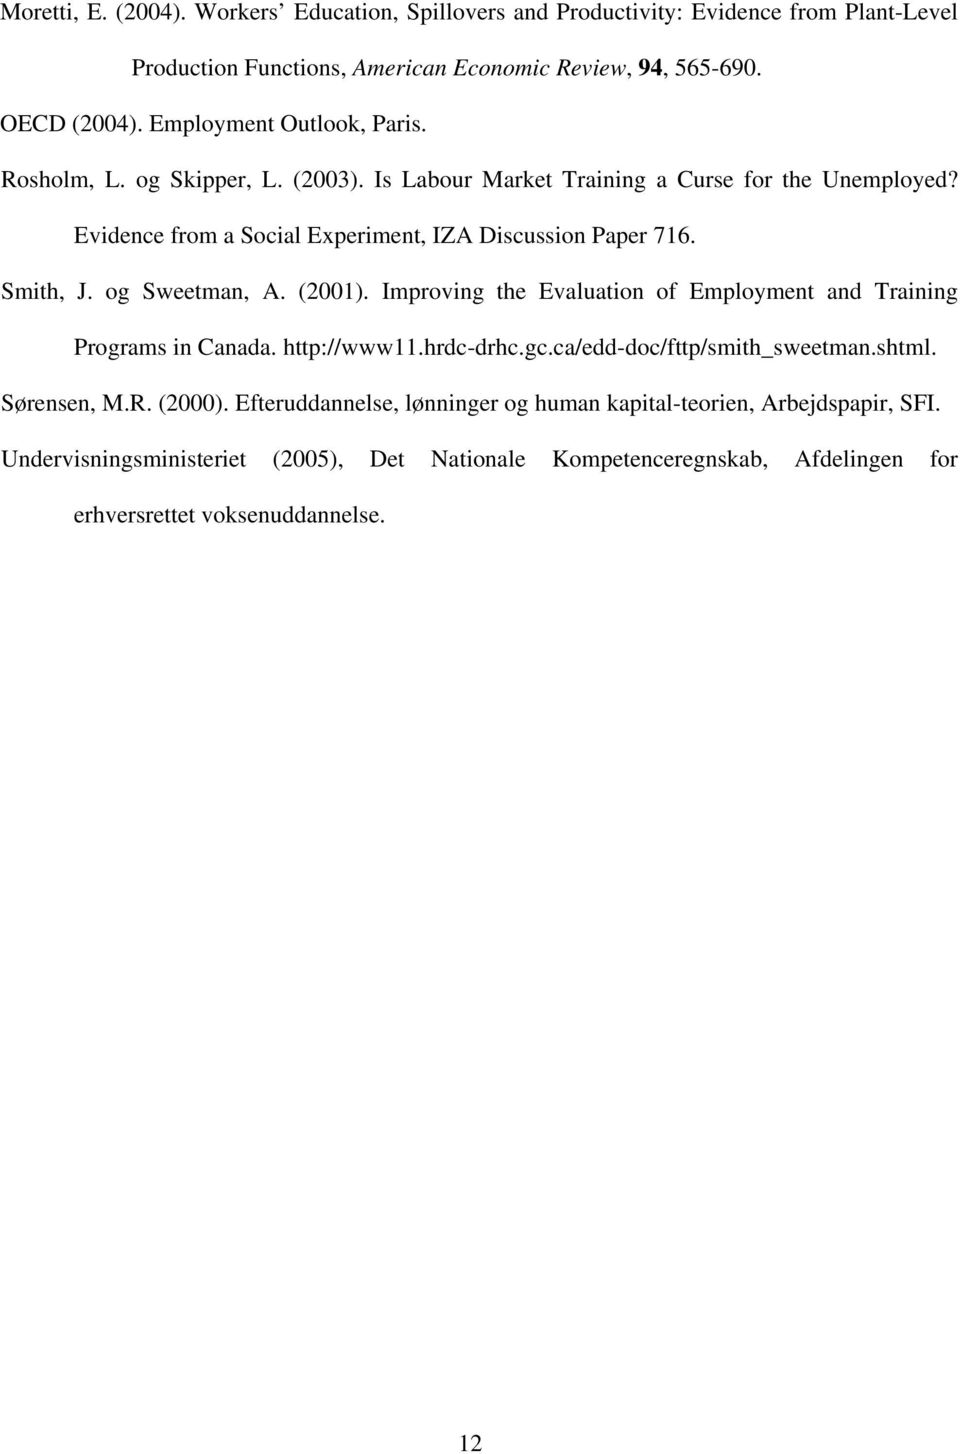 Smith, J. og Sweetman, A. (2001). Improving the Evaluation of Employment and Training Programs in Canada. http://www11.hrdc-drhc.gc.ca/edd-doc/fttp/smith_sweetman.shtml. Sørensen, M.